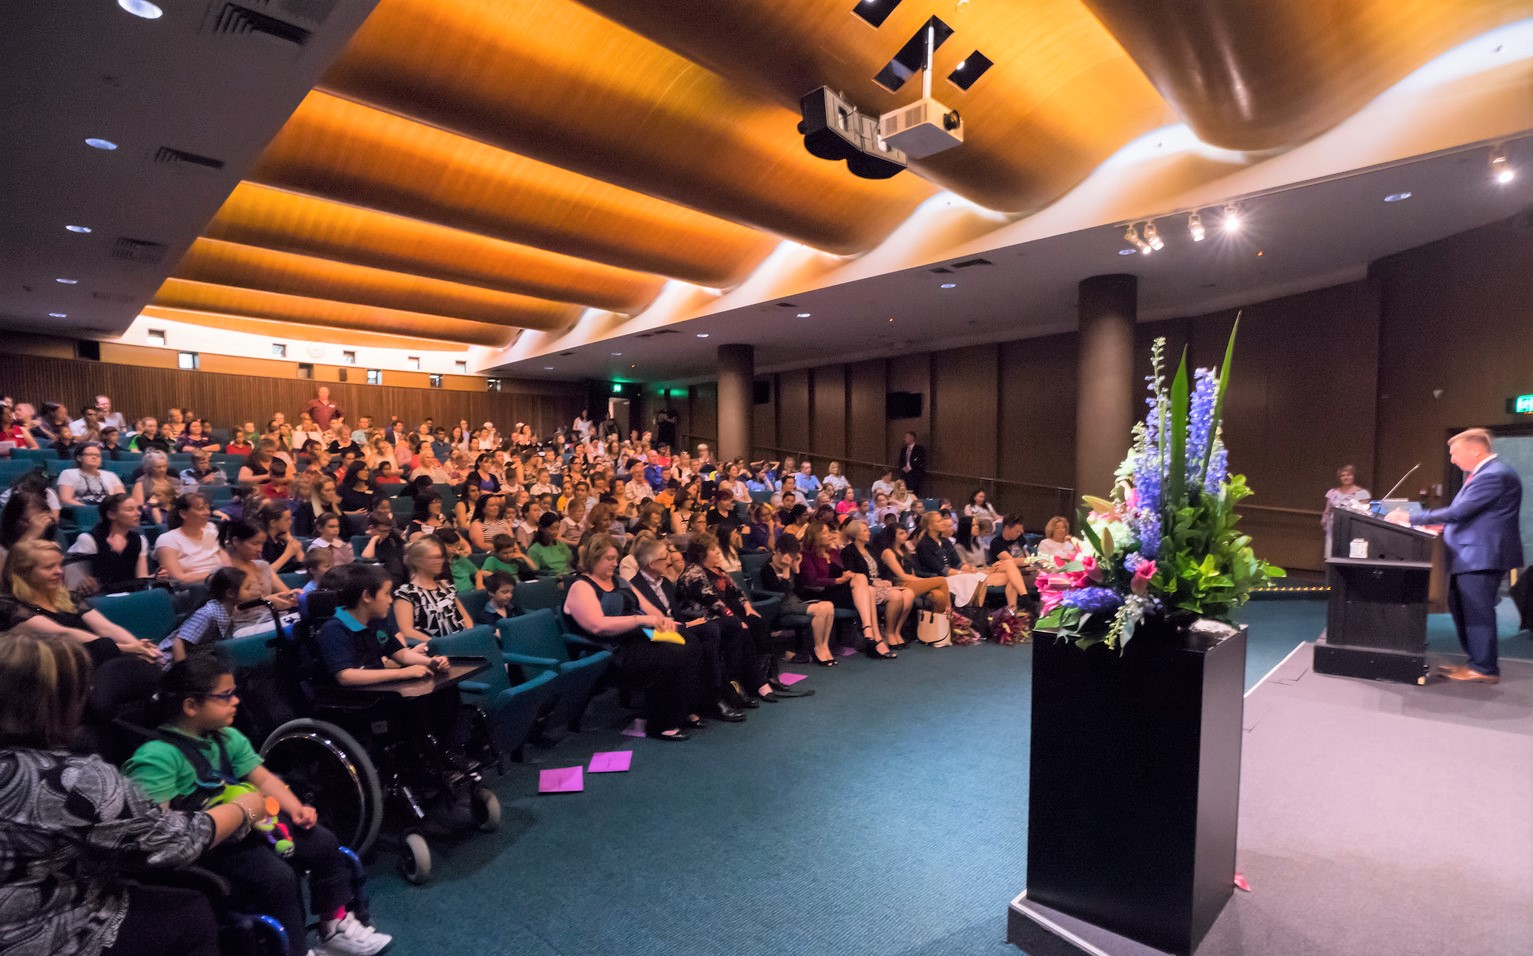 This is the Chief Minister's Reading Challenge closing ceremony at the National Library of Australia, November 2016. I'm sitting front row far right, white skirt, with my fellow ambassadors, as we celebrate a year of reading. The audience is a beautiful bevy of teacher/librarians from all over the Canberra Region. Tens of thousands of children took part in CMRC in 2016, and the initiative continues to grow.